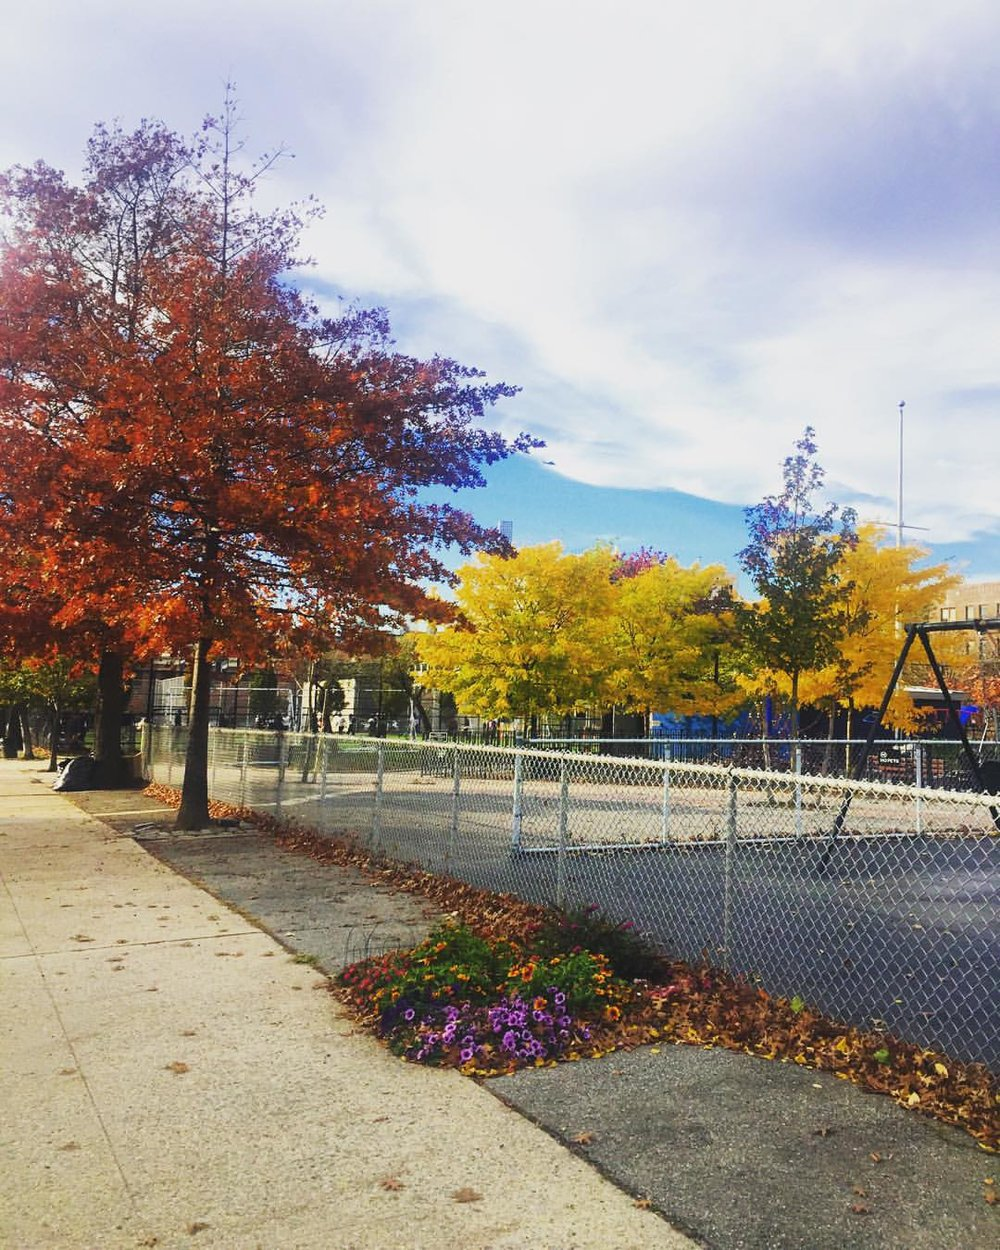 Yesterday's blue skies at John F Murray playground in Long Island City 🍁)